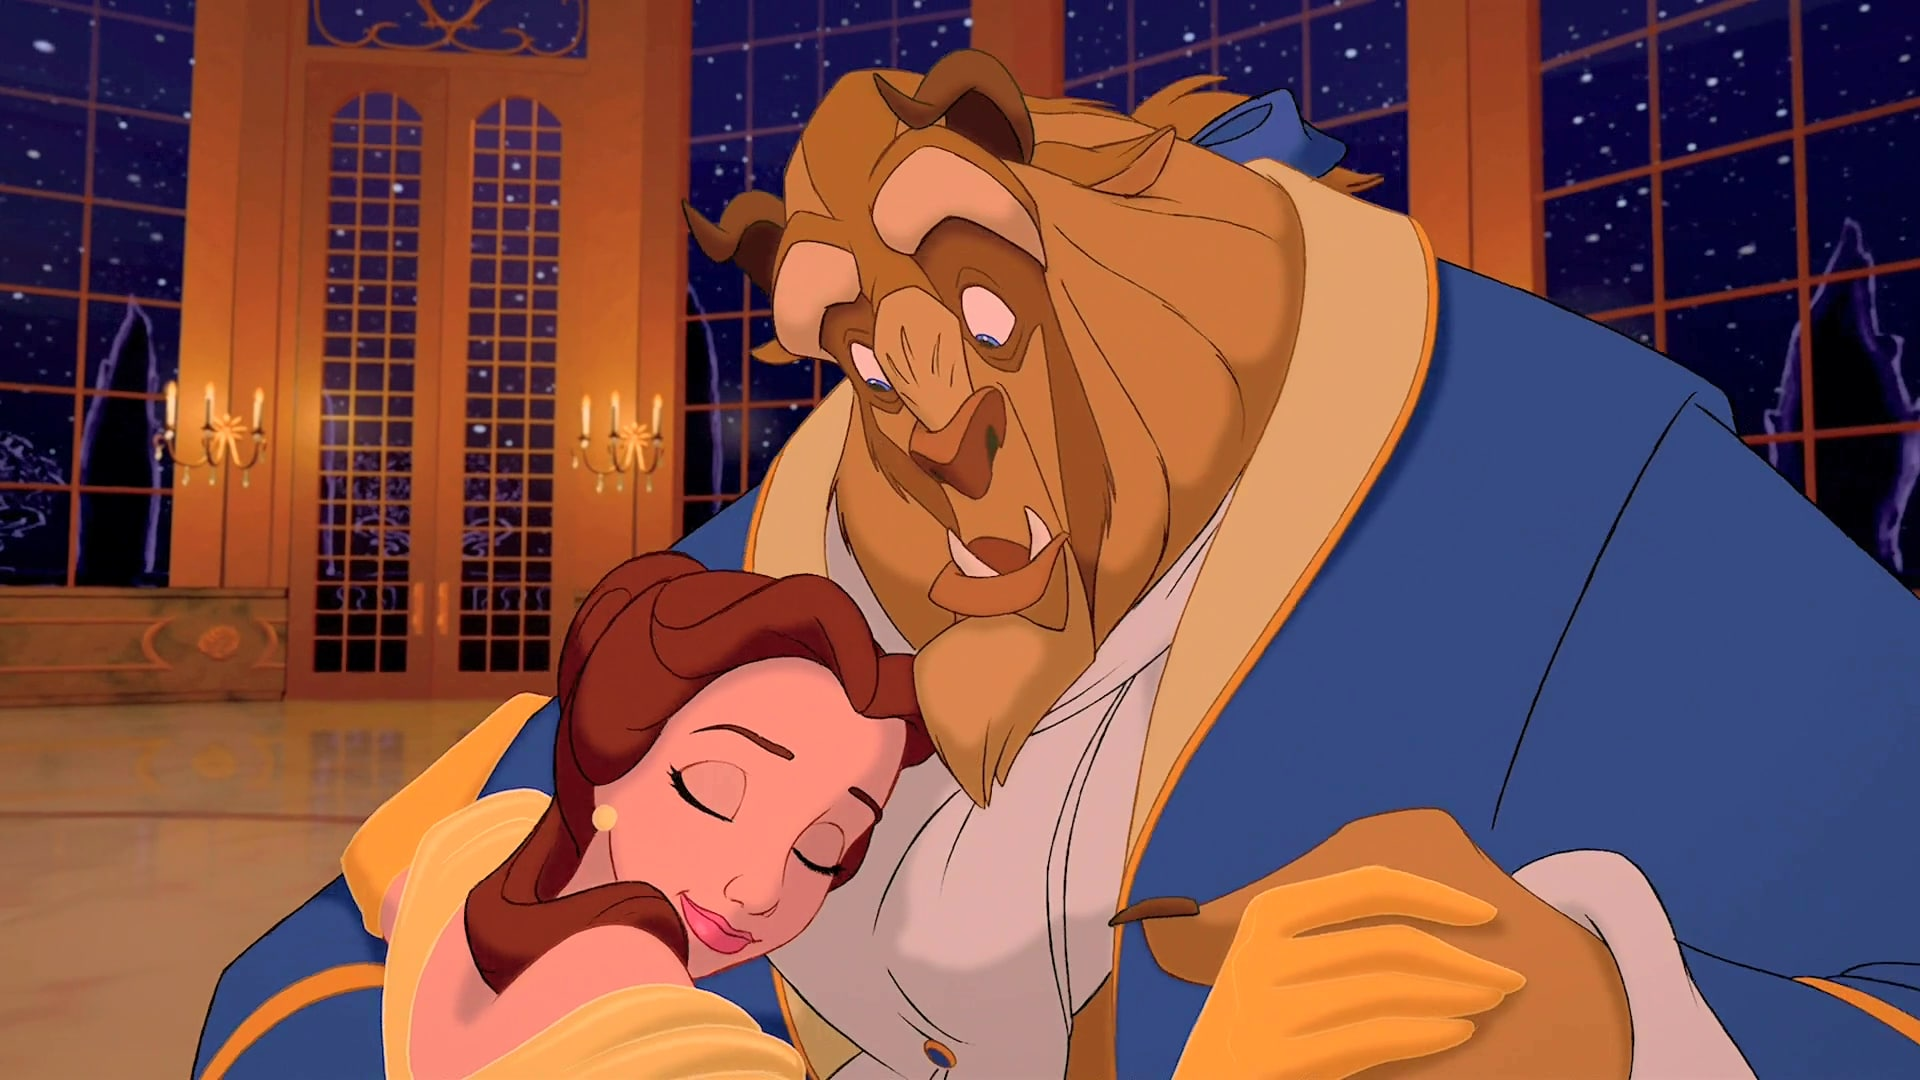 Valentine's Day Hugs Montage From Your Favorite Disney Characters | Oh My Disney